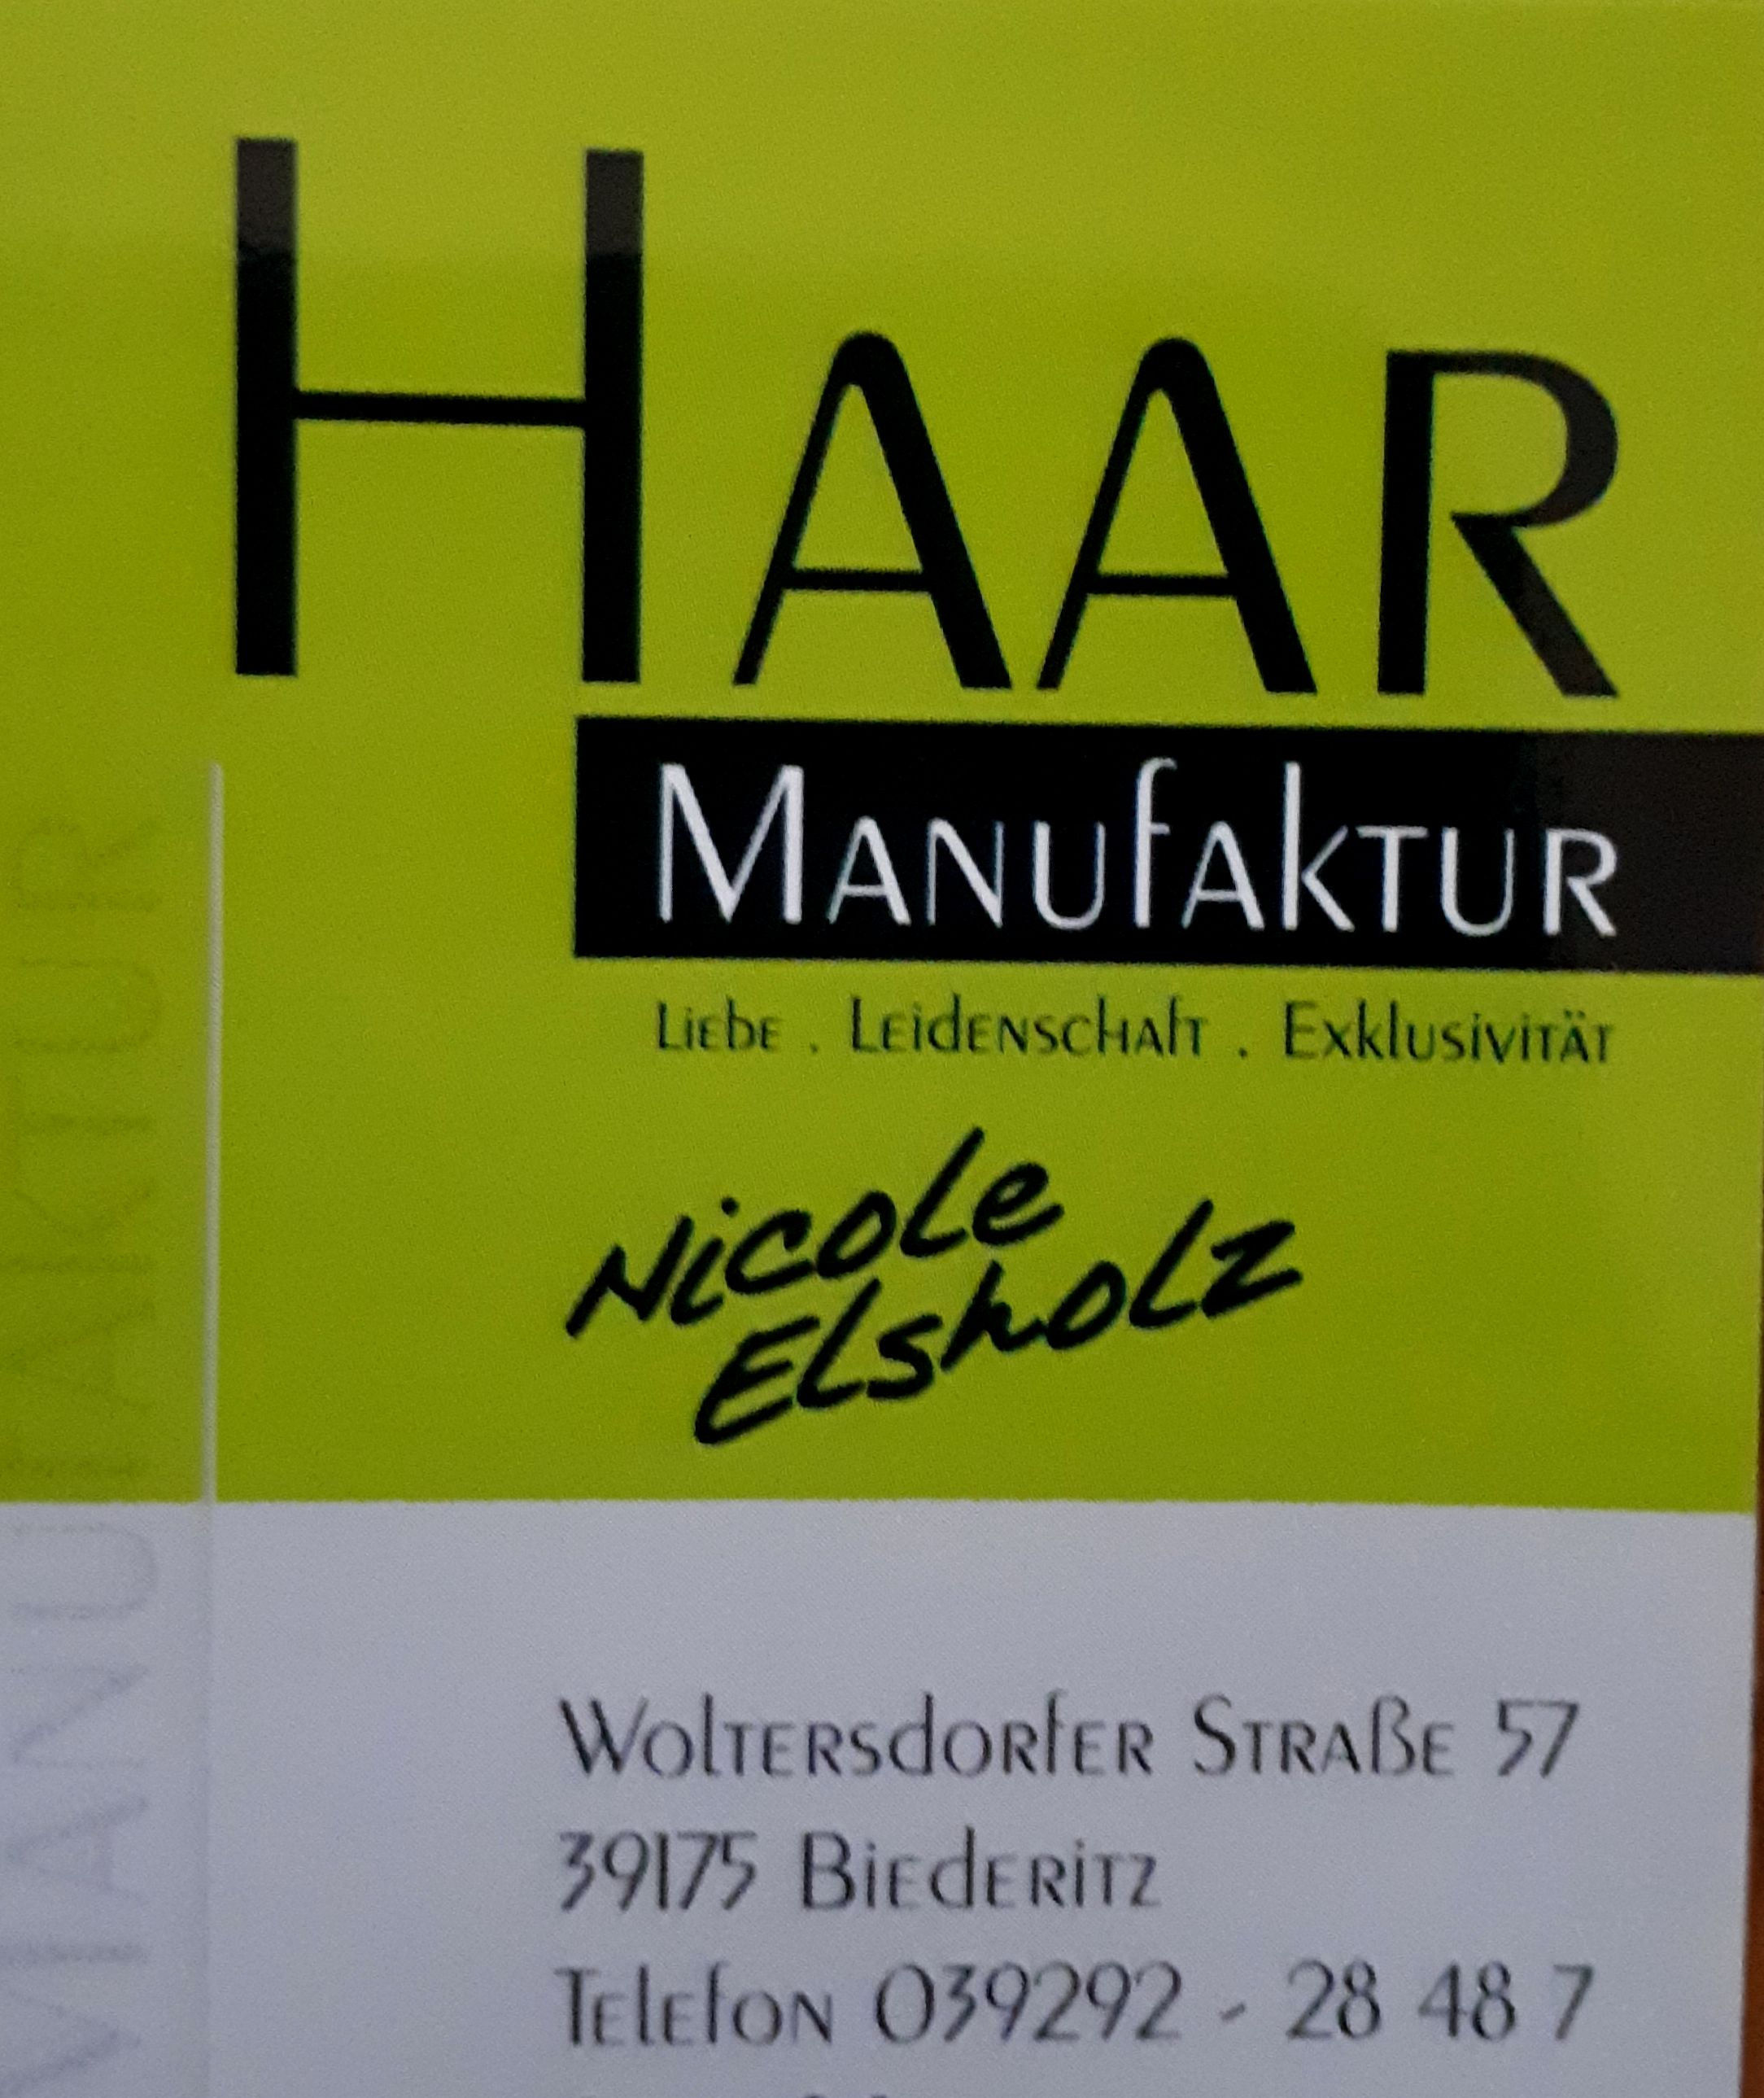 Haarmanufaktur Nicole Elsholz